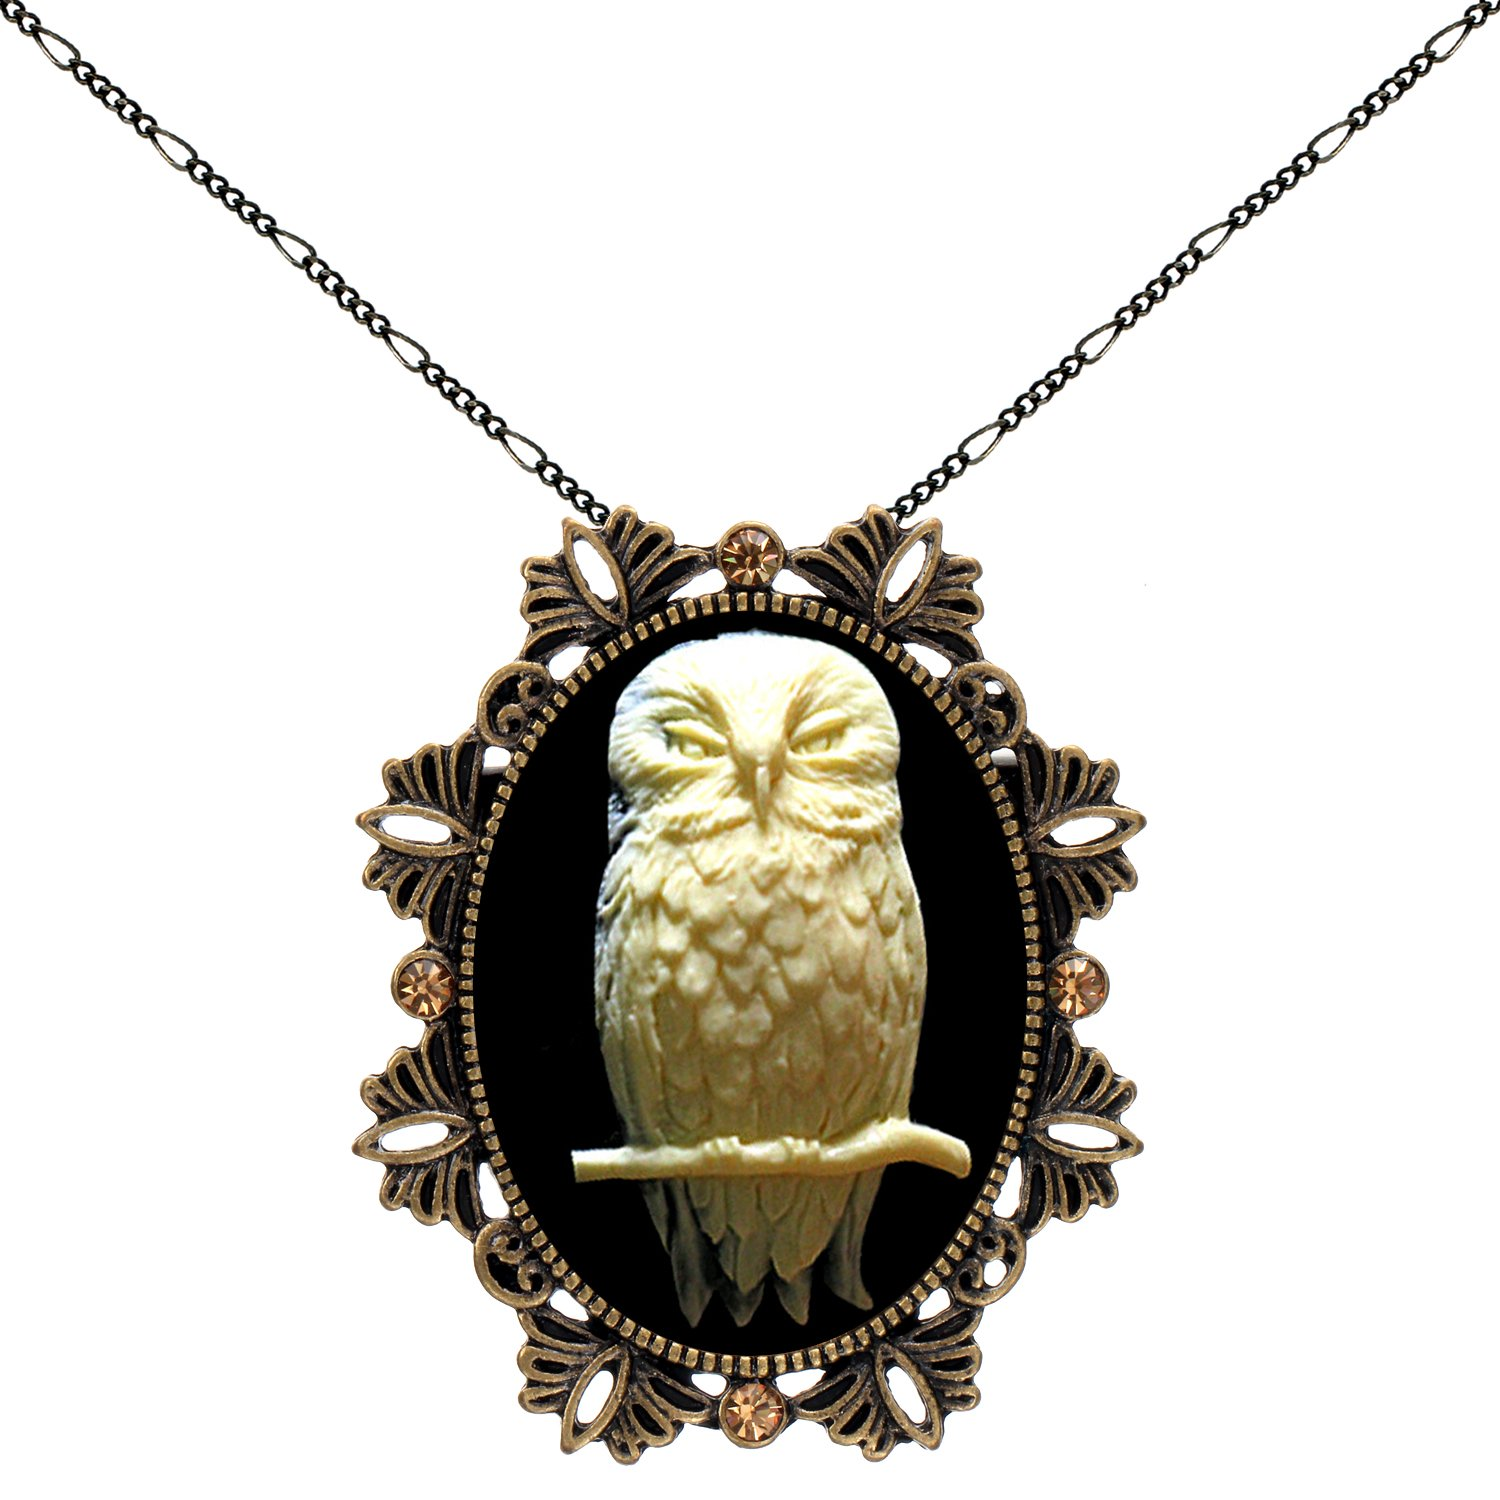 Owl Brooch Animal Necklace Two Way Functional Antique Brass Pendant 18'' 24'' Chain Pouch for Gift